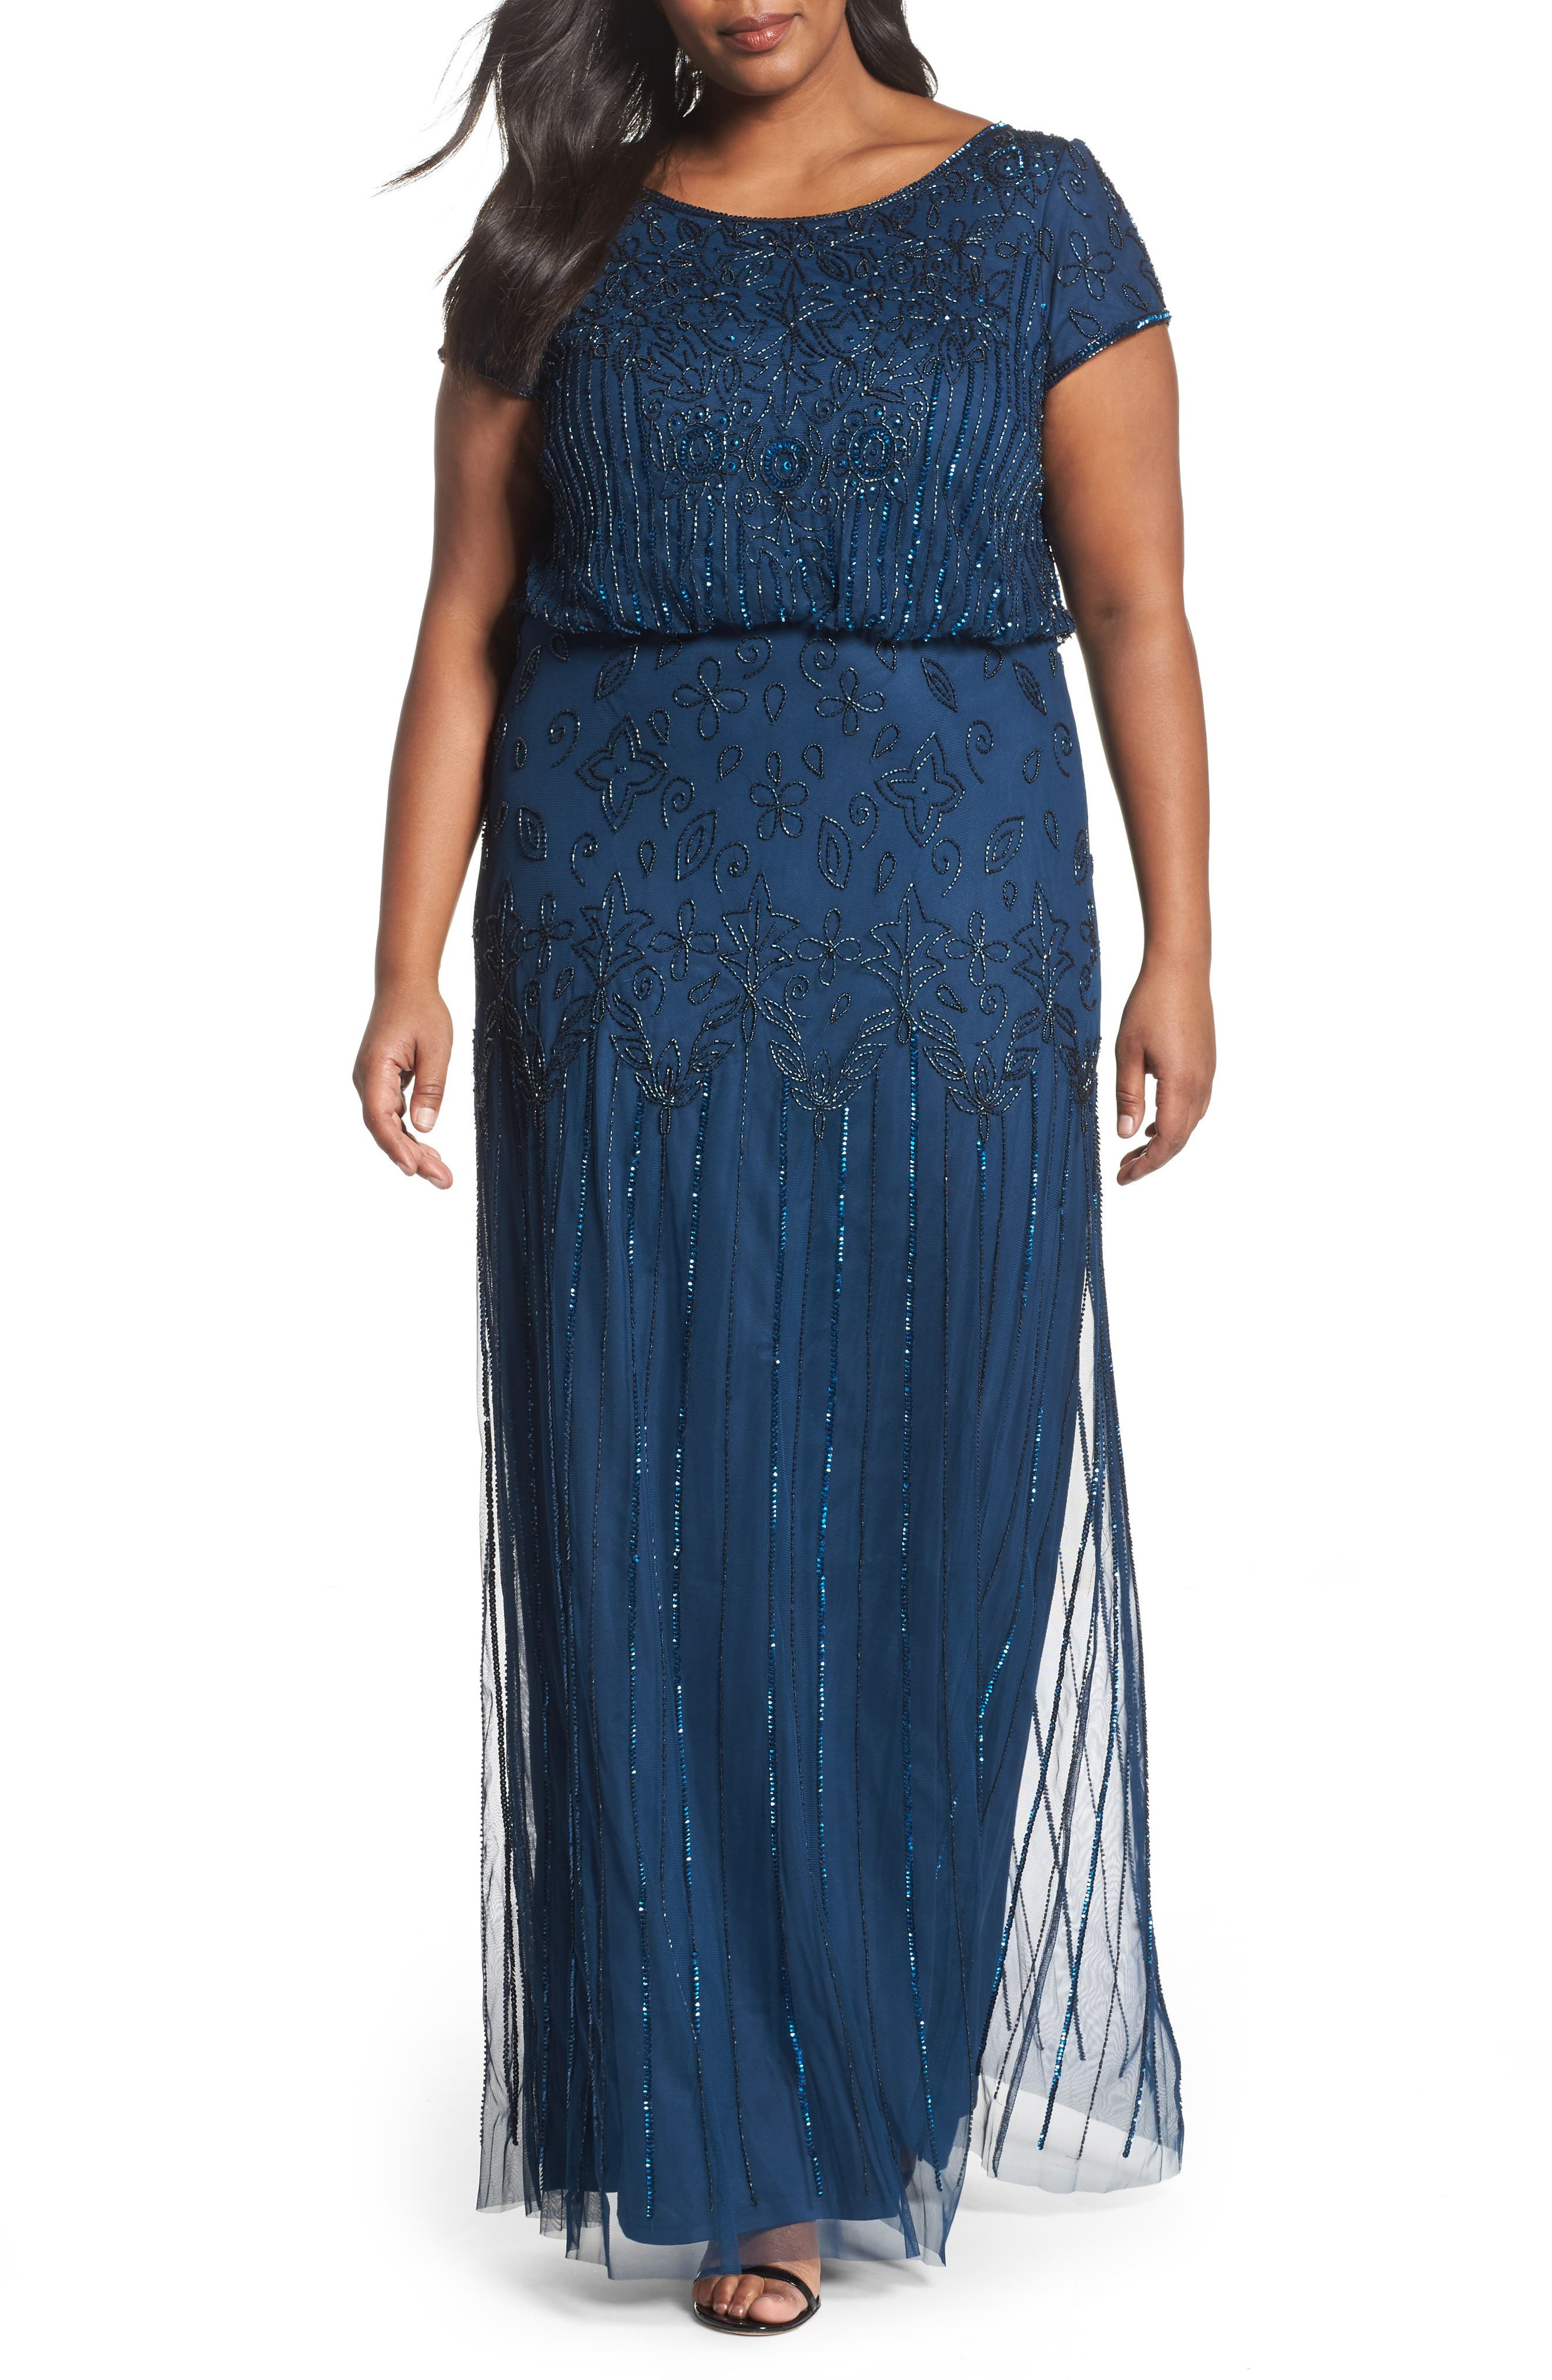 Alternate Image 1 Selected - Adrianna Papell Beaded Blouson Gown (Plus Size)